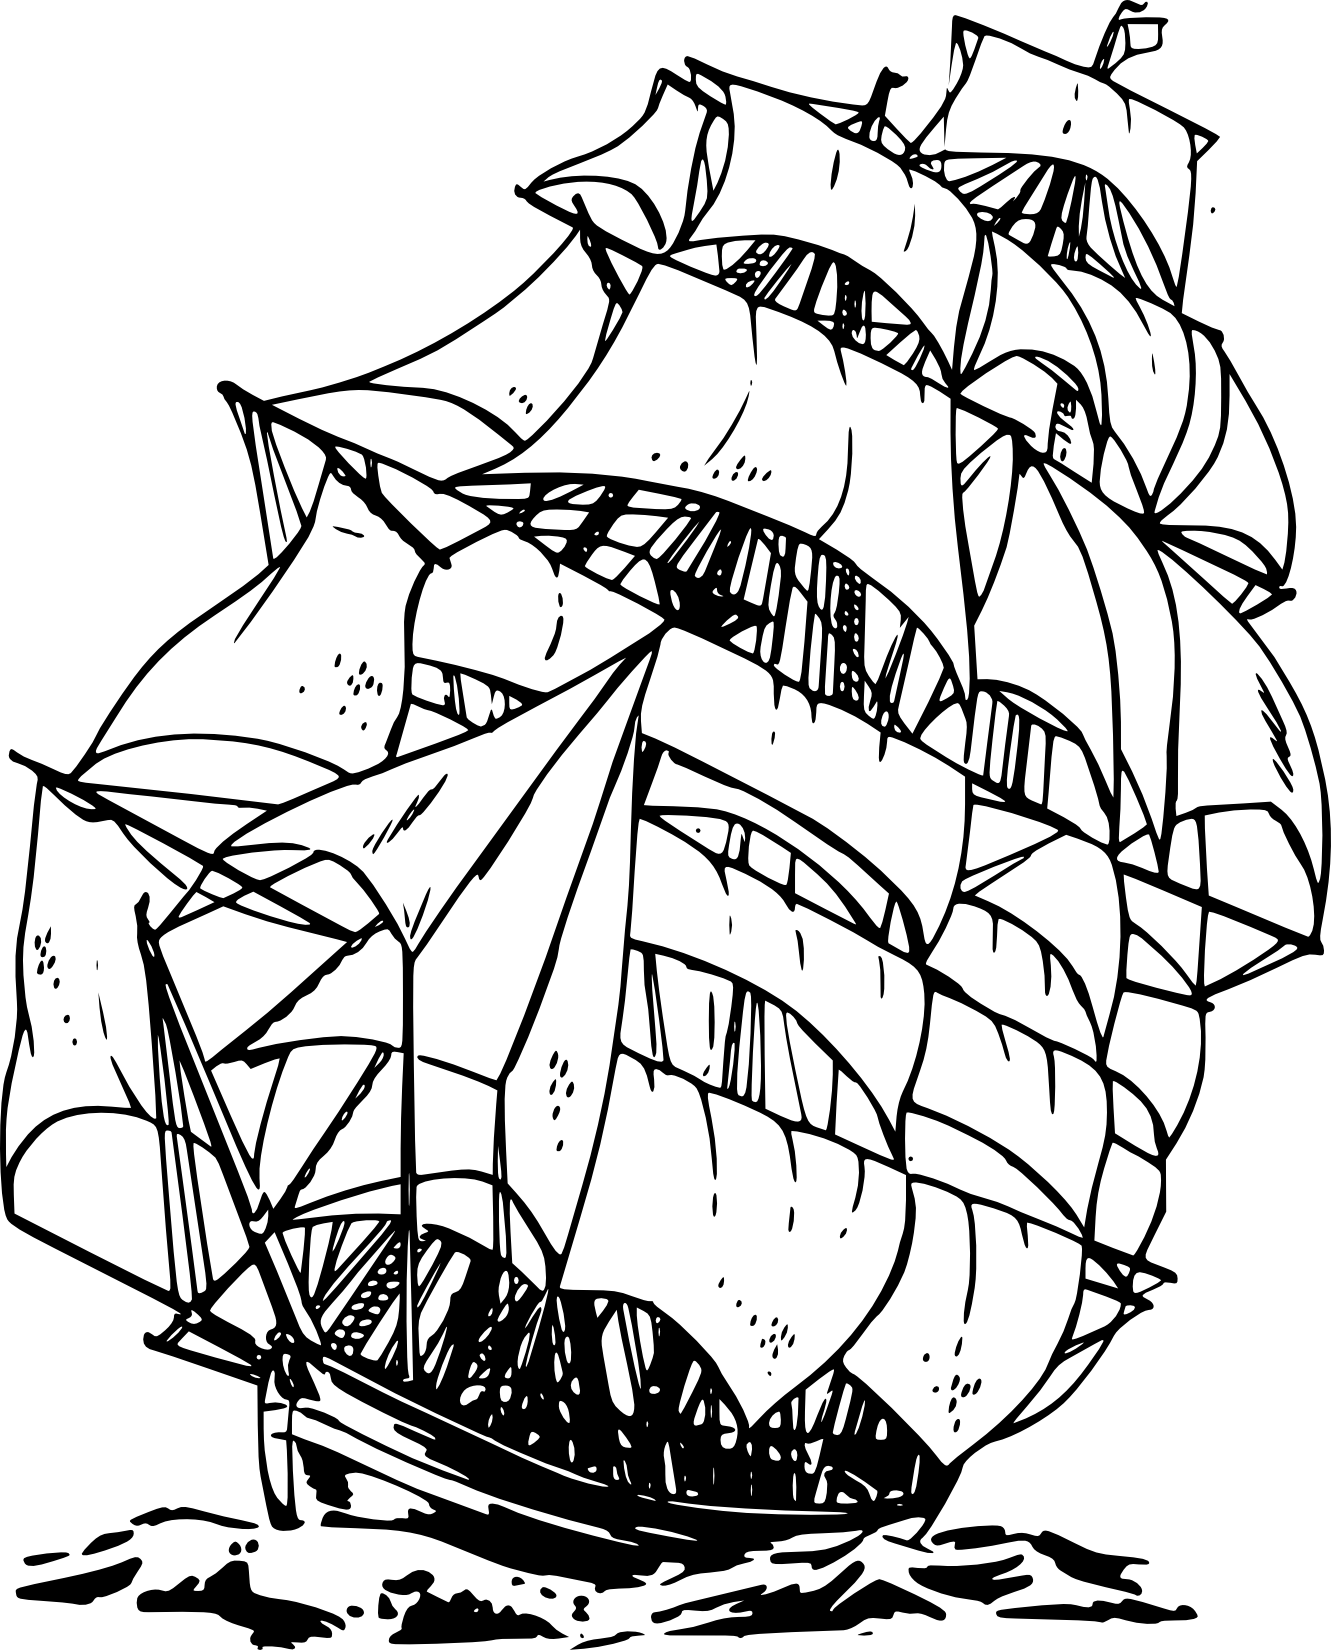 Line Art Boat : Pirate ship clipart black and white panda free